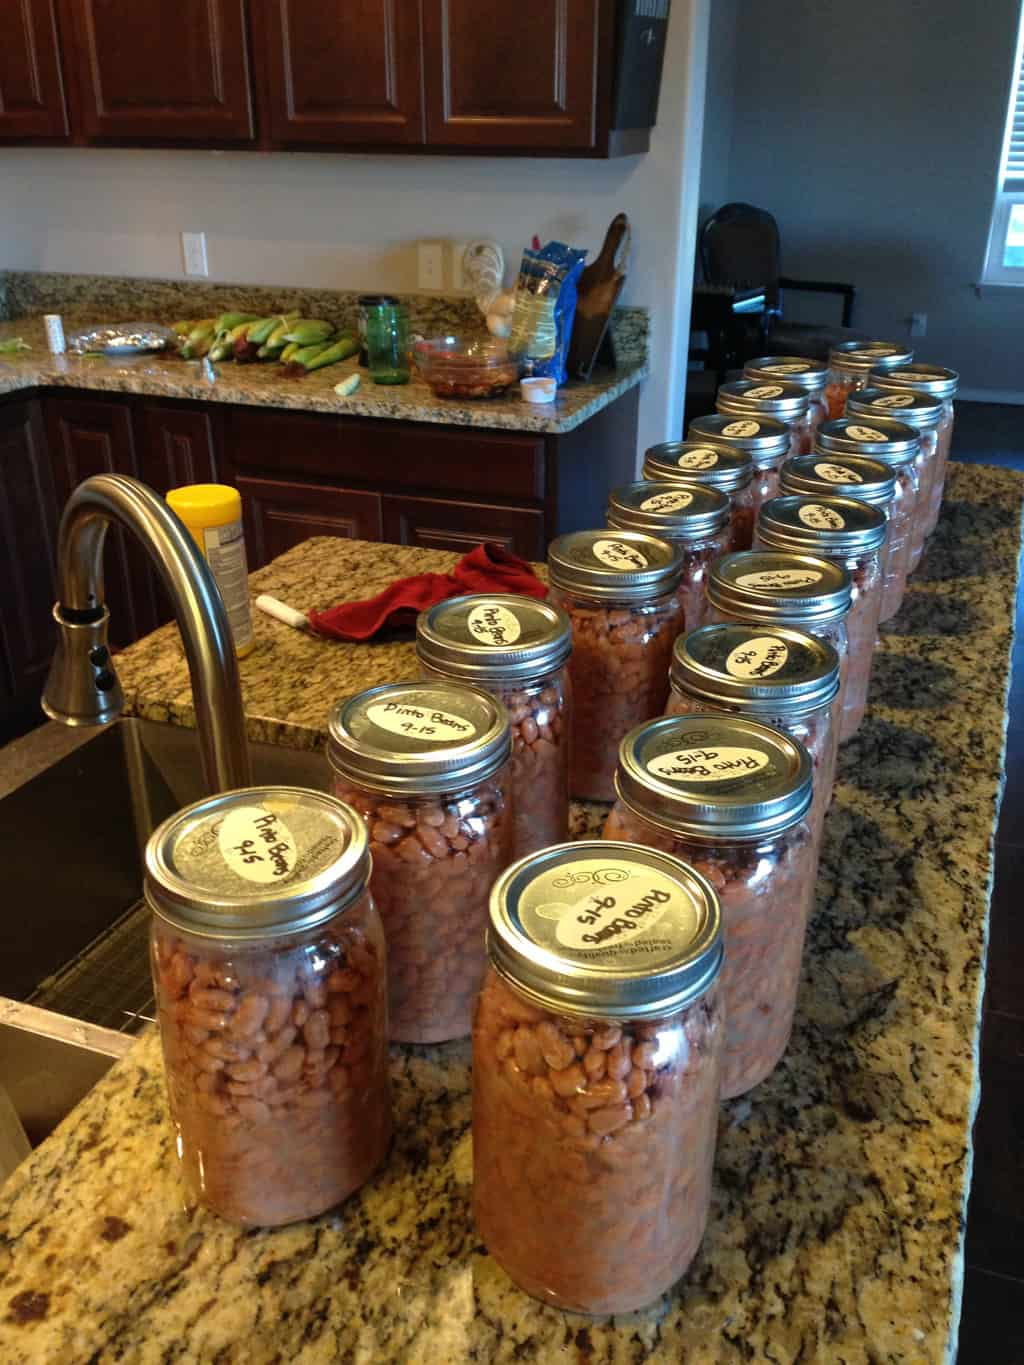 photo of beans canned in mason jars on the kitchen counter